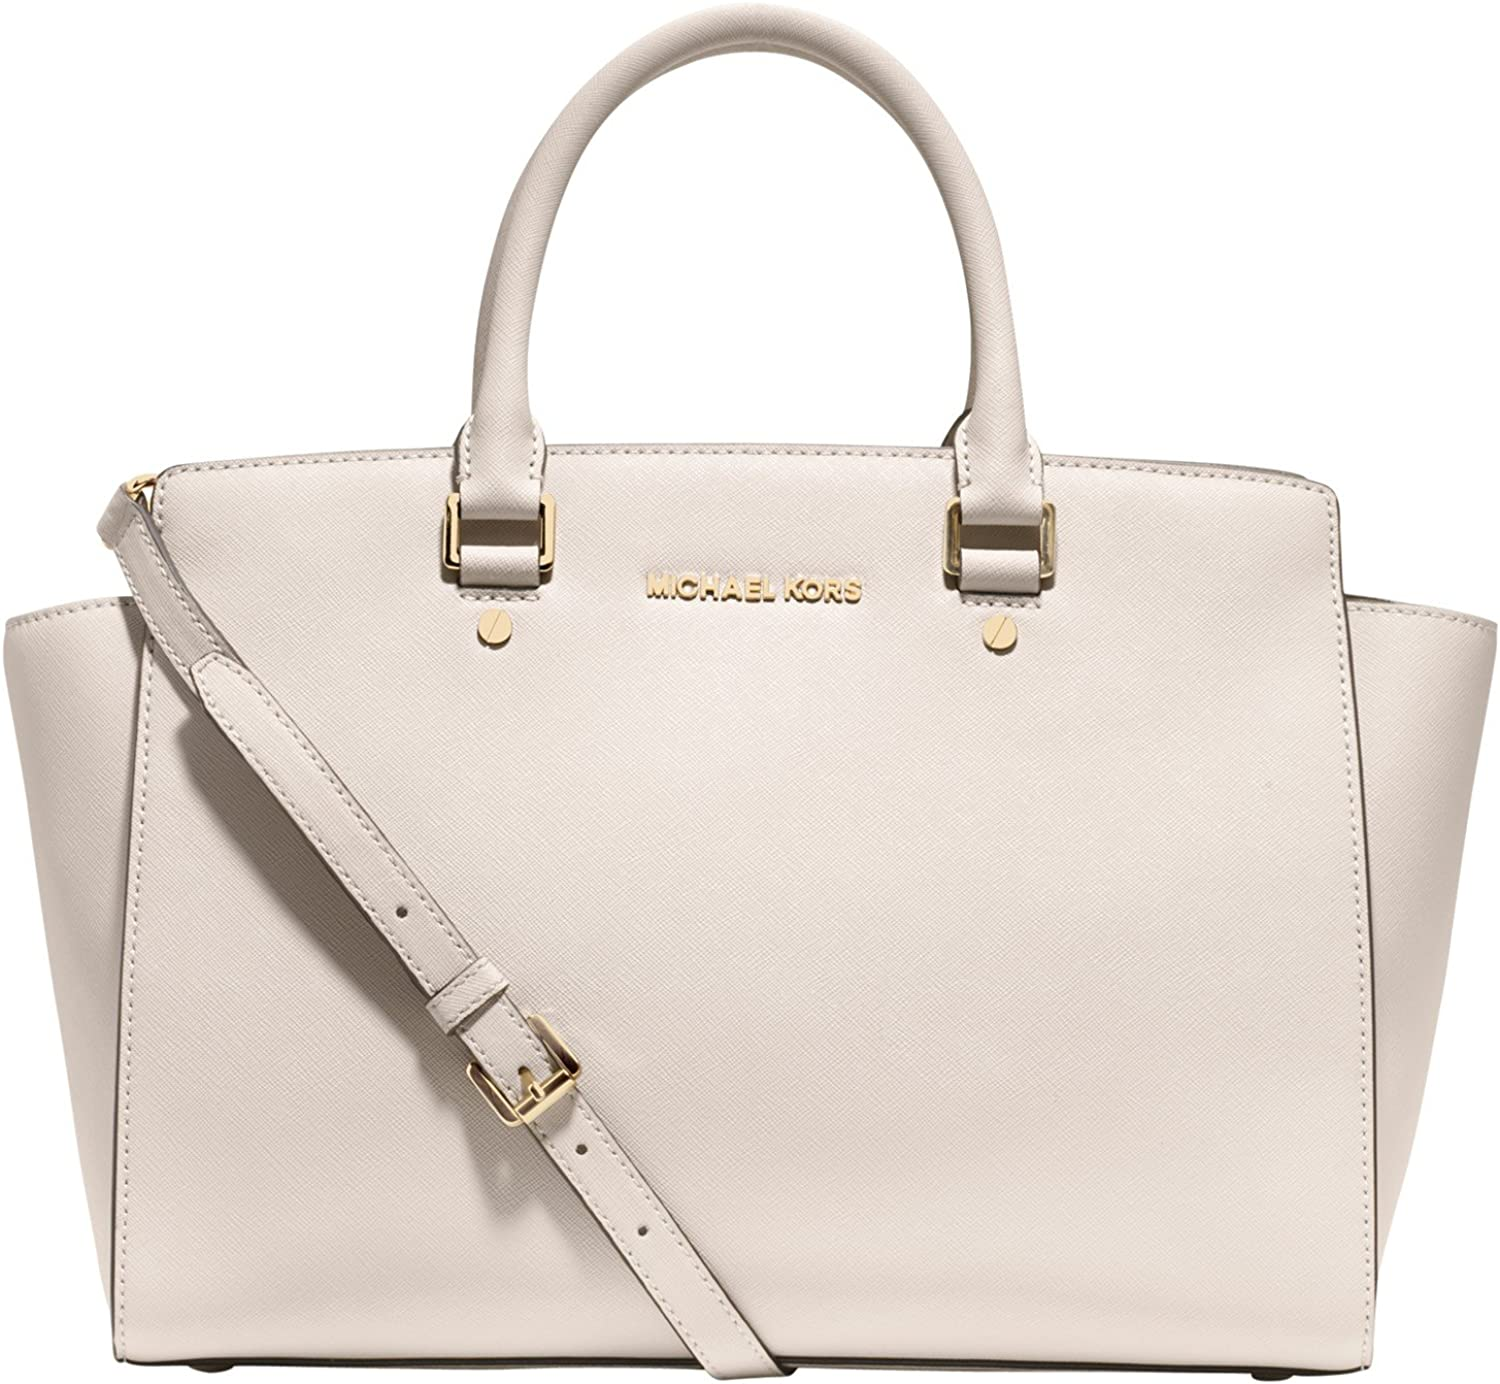 MK selma large east west satchel